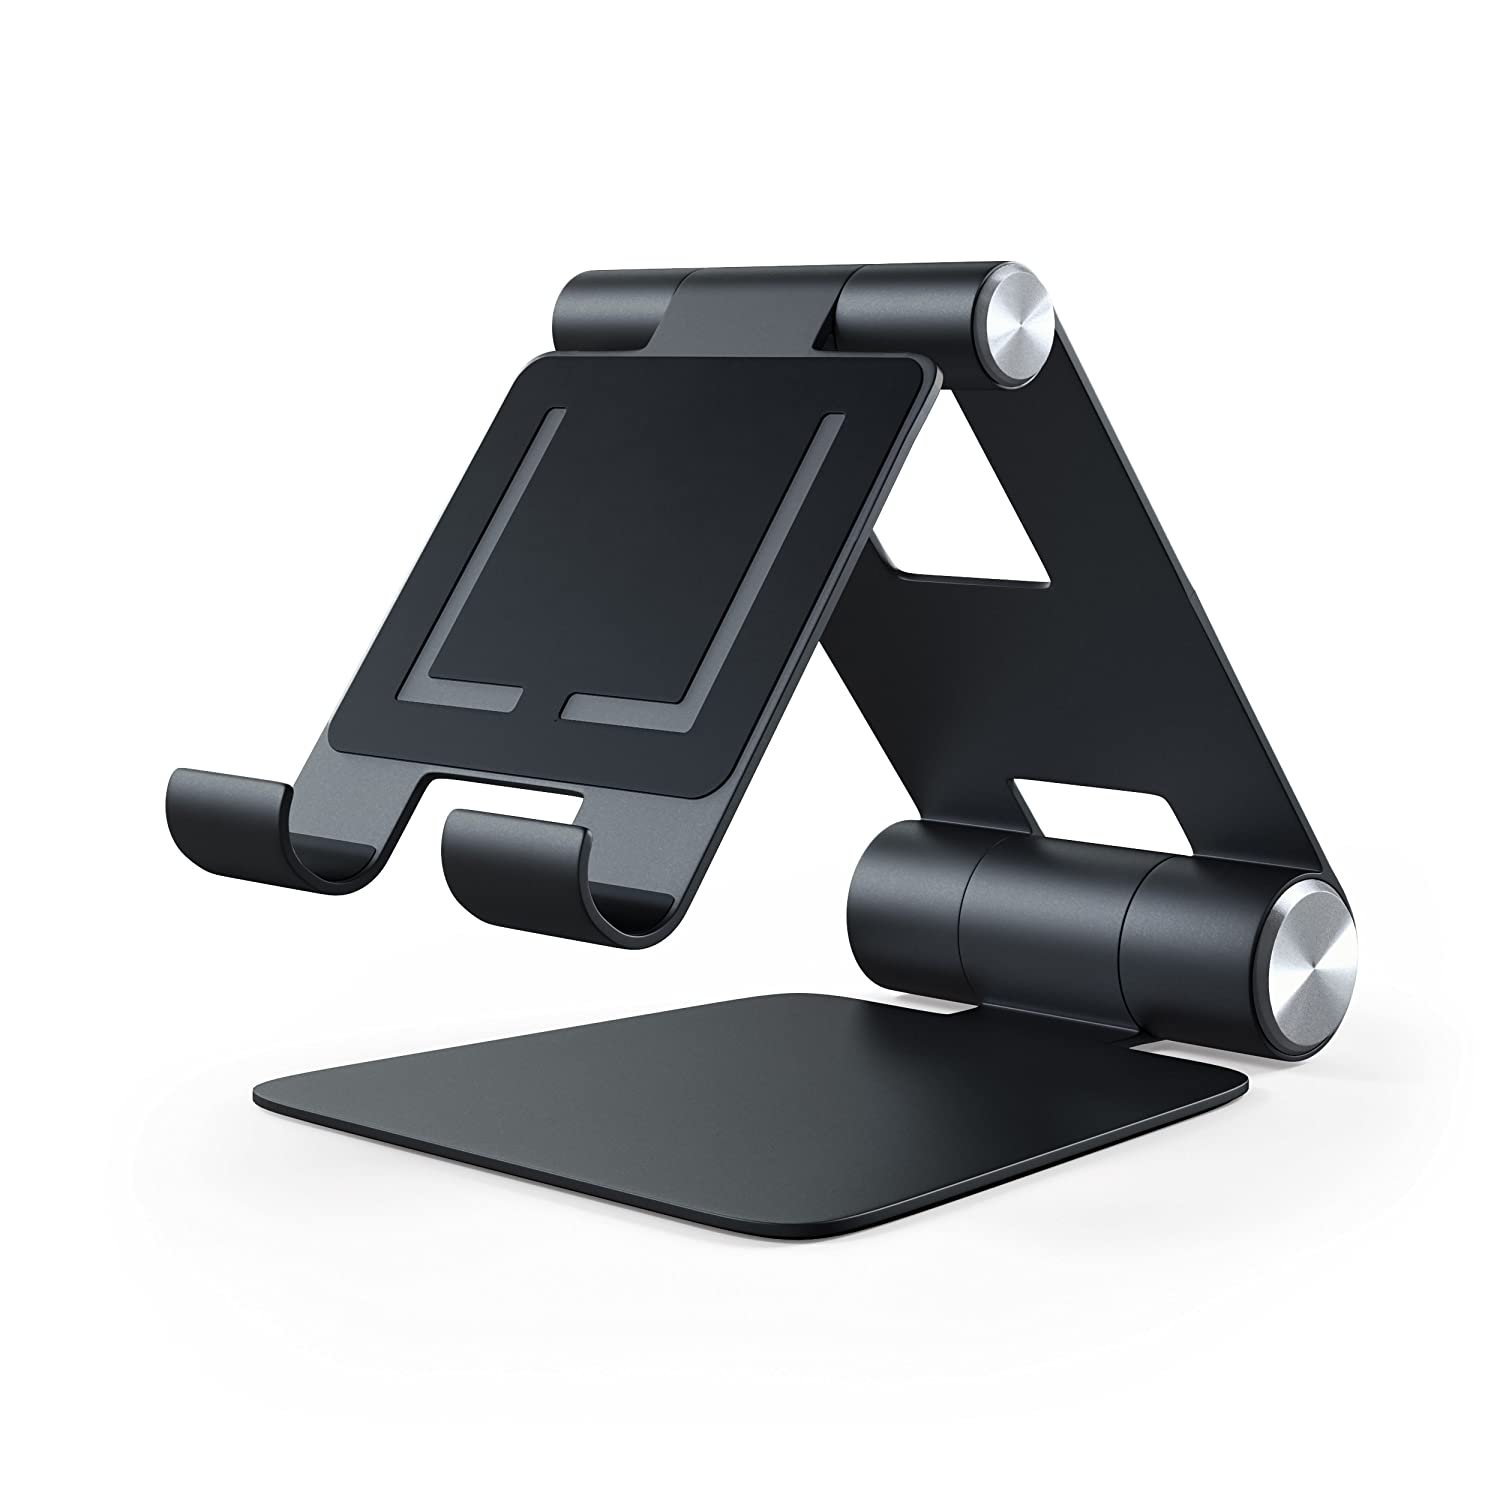 8 iPhone Satechi R1 Aluminum Multi Angle Foldable Tablet Stand compatible with iPad Samsung S8 8 Plus MacBook 2015//2016 and more Silver